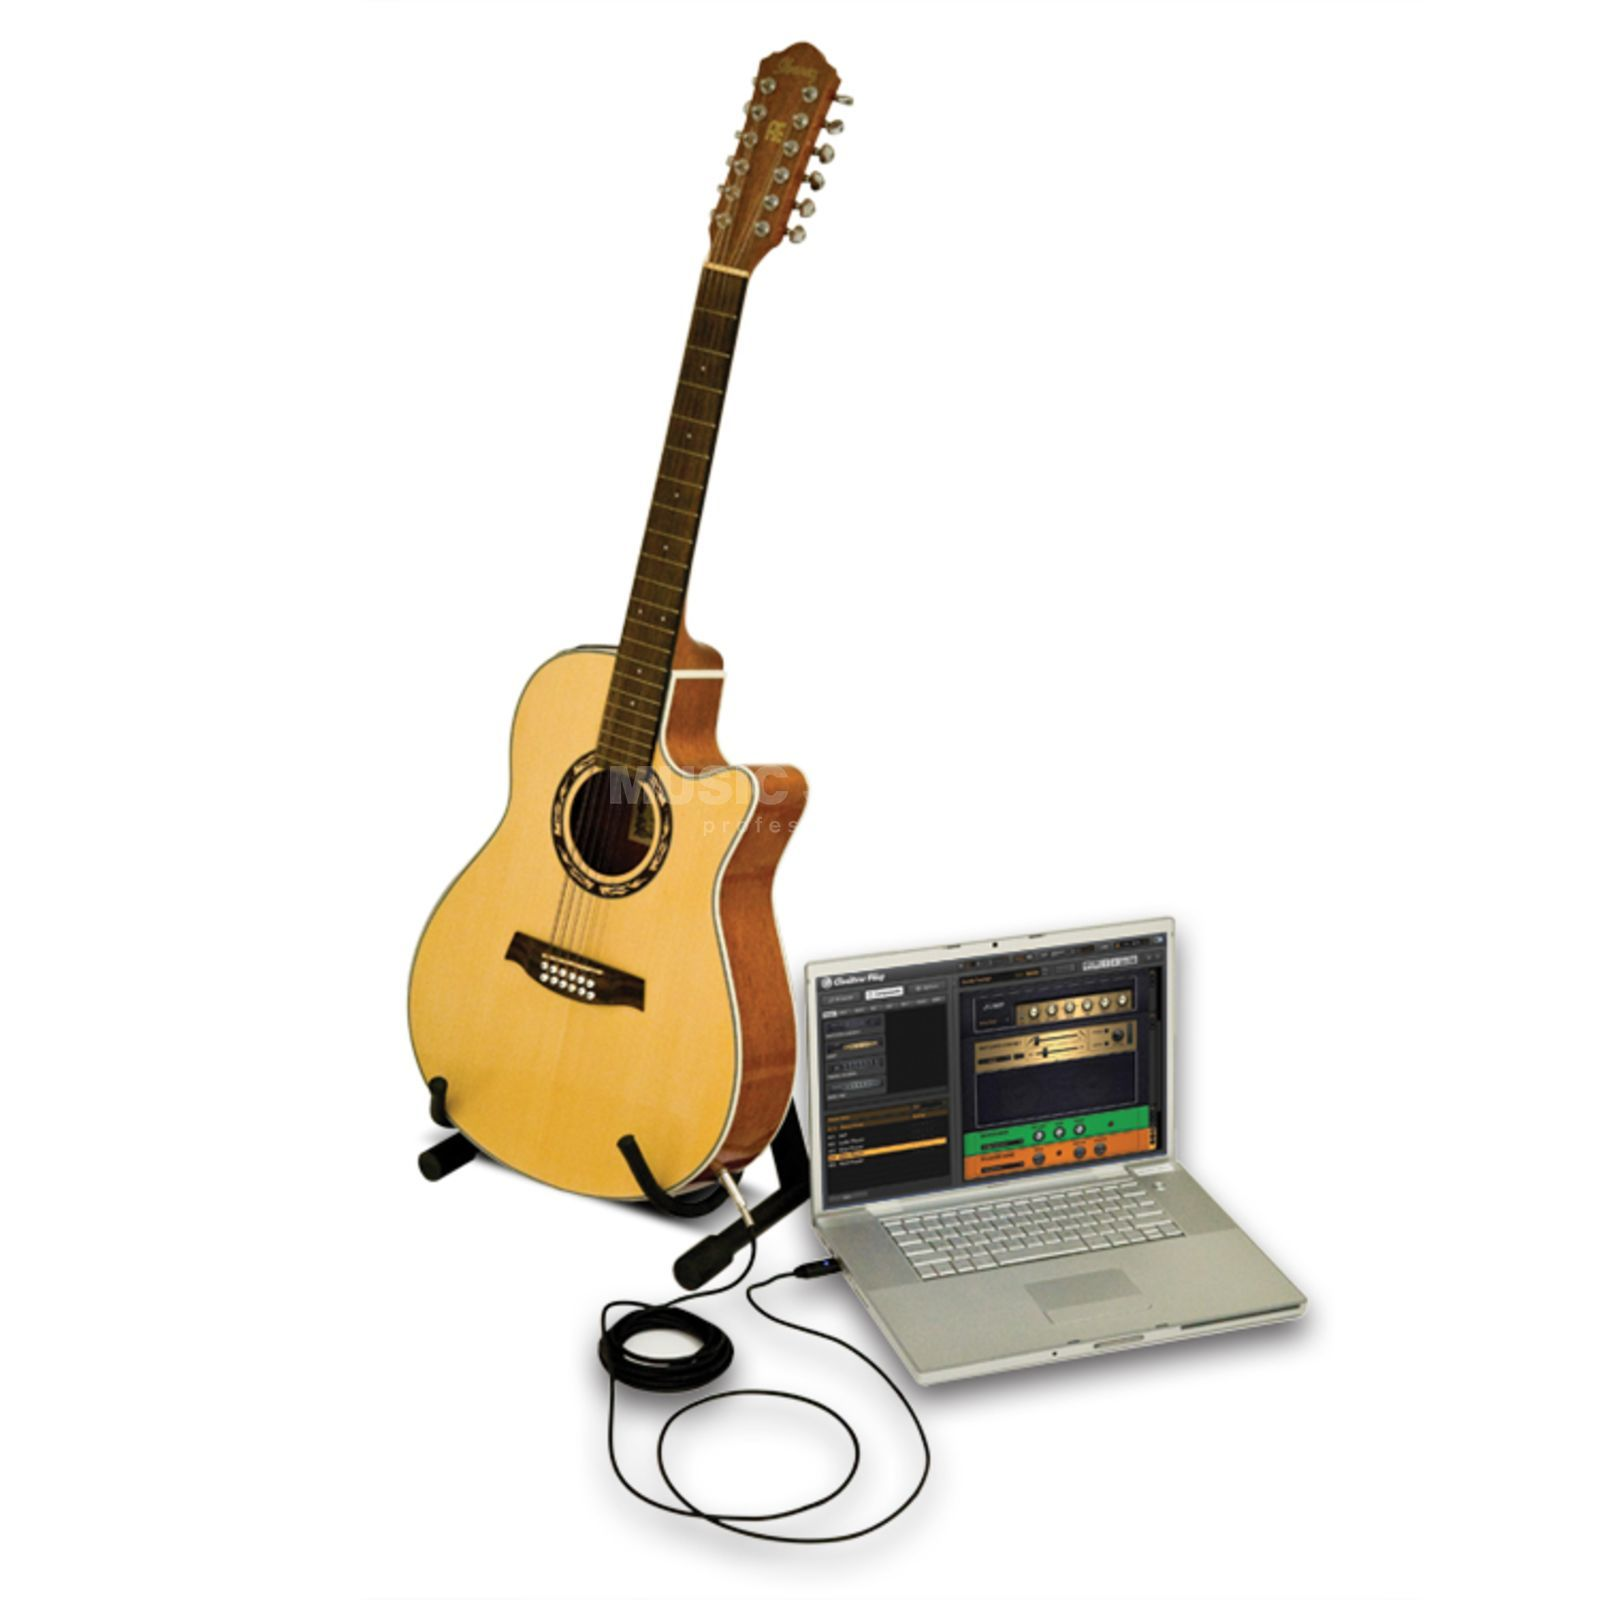 Alesis GuitarLink Plus USB Audio Kabel Produktbild